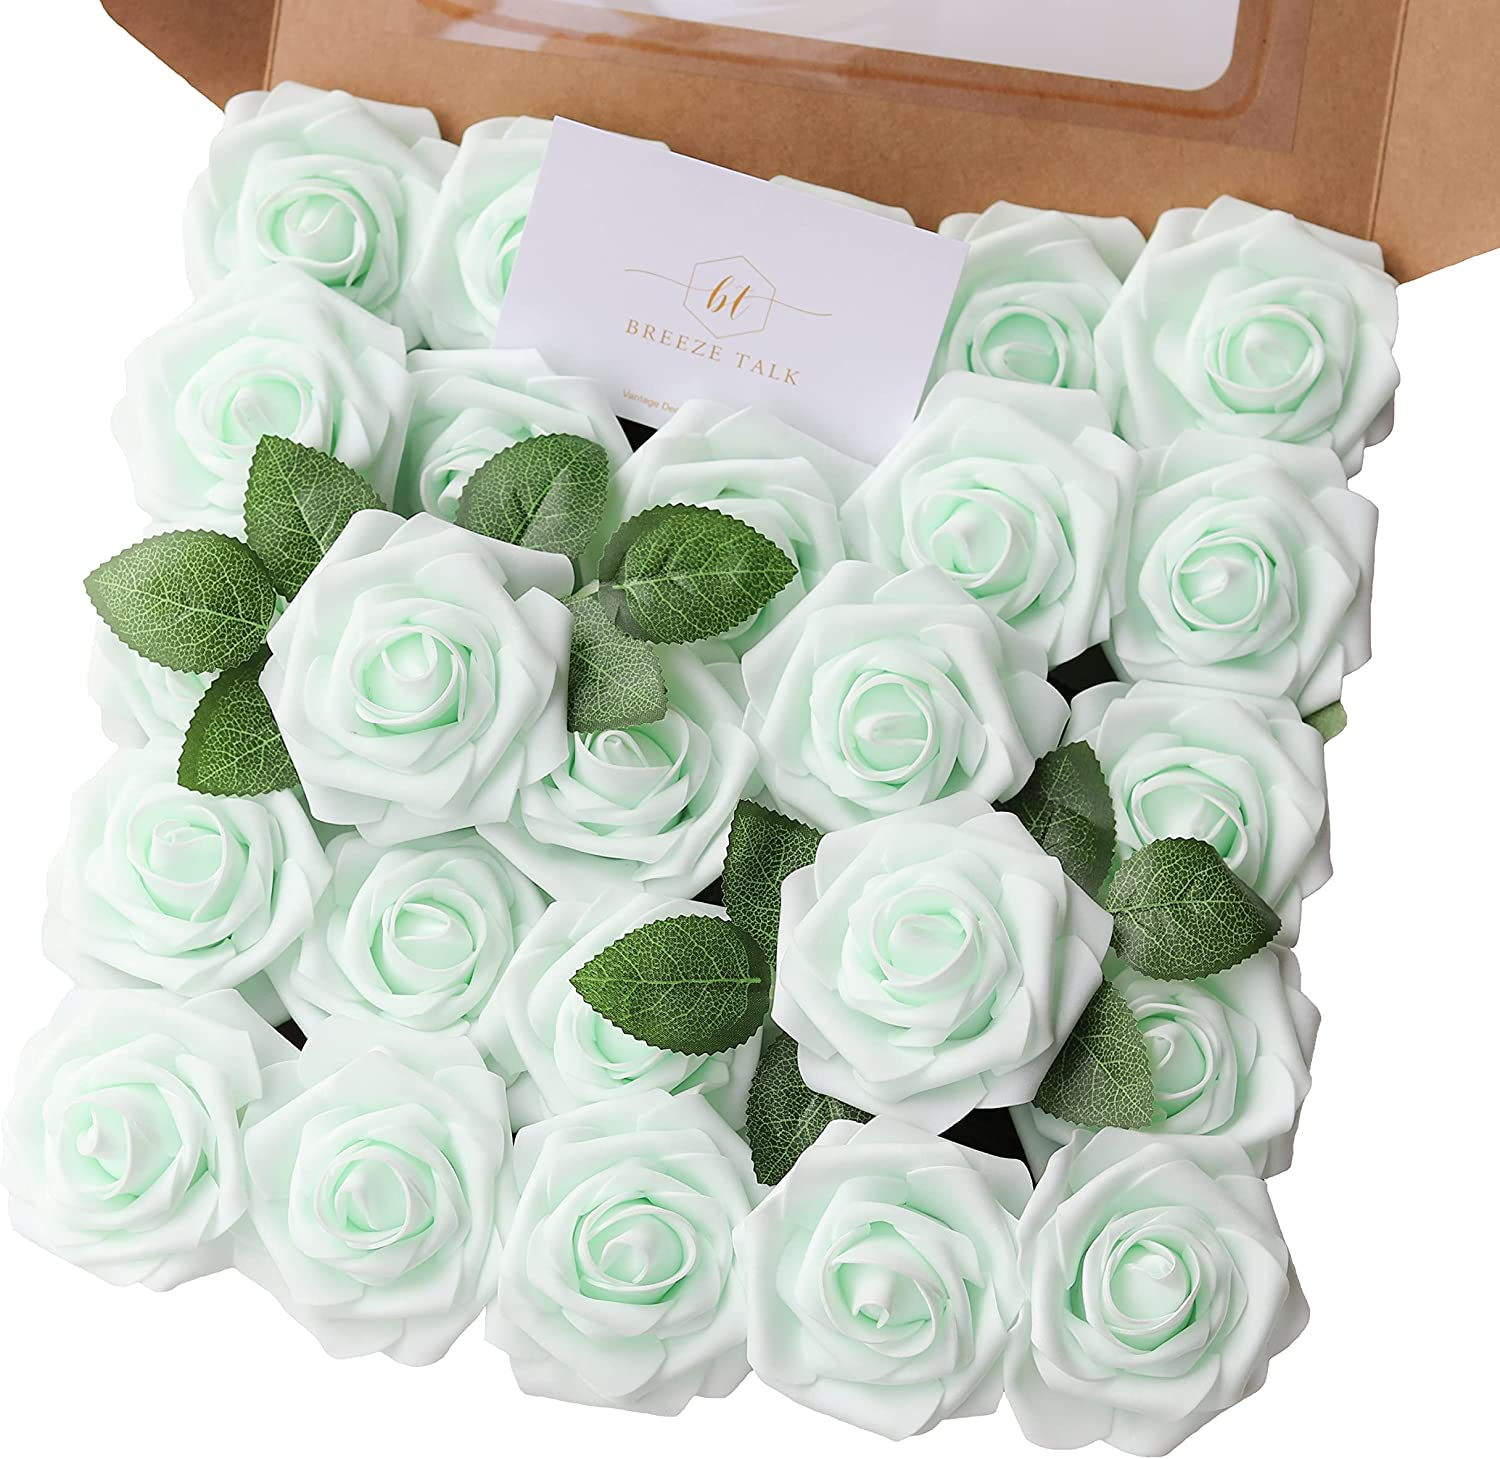 Breeze Talk Artificial Flowers 25pcs Mint Green Roses Realistic Fake Roses w/Stem for DIY Wedding Bouquets Centerpieces Arrangements Party Baby Shower Home Decorations(Mint Green, 25)